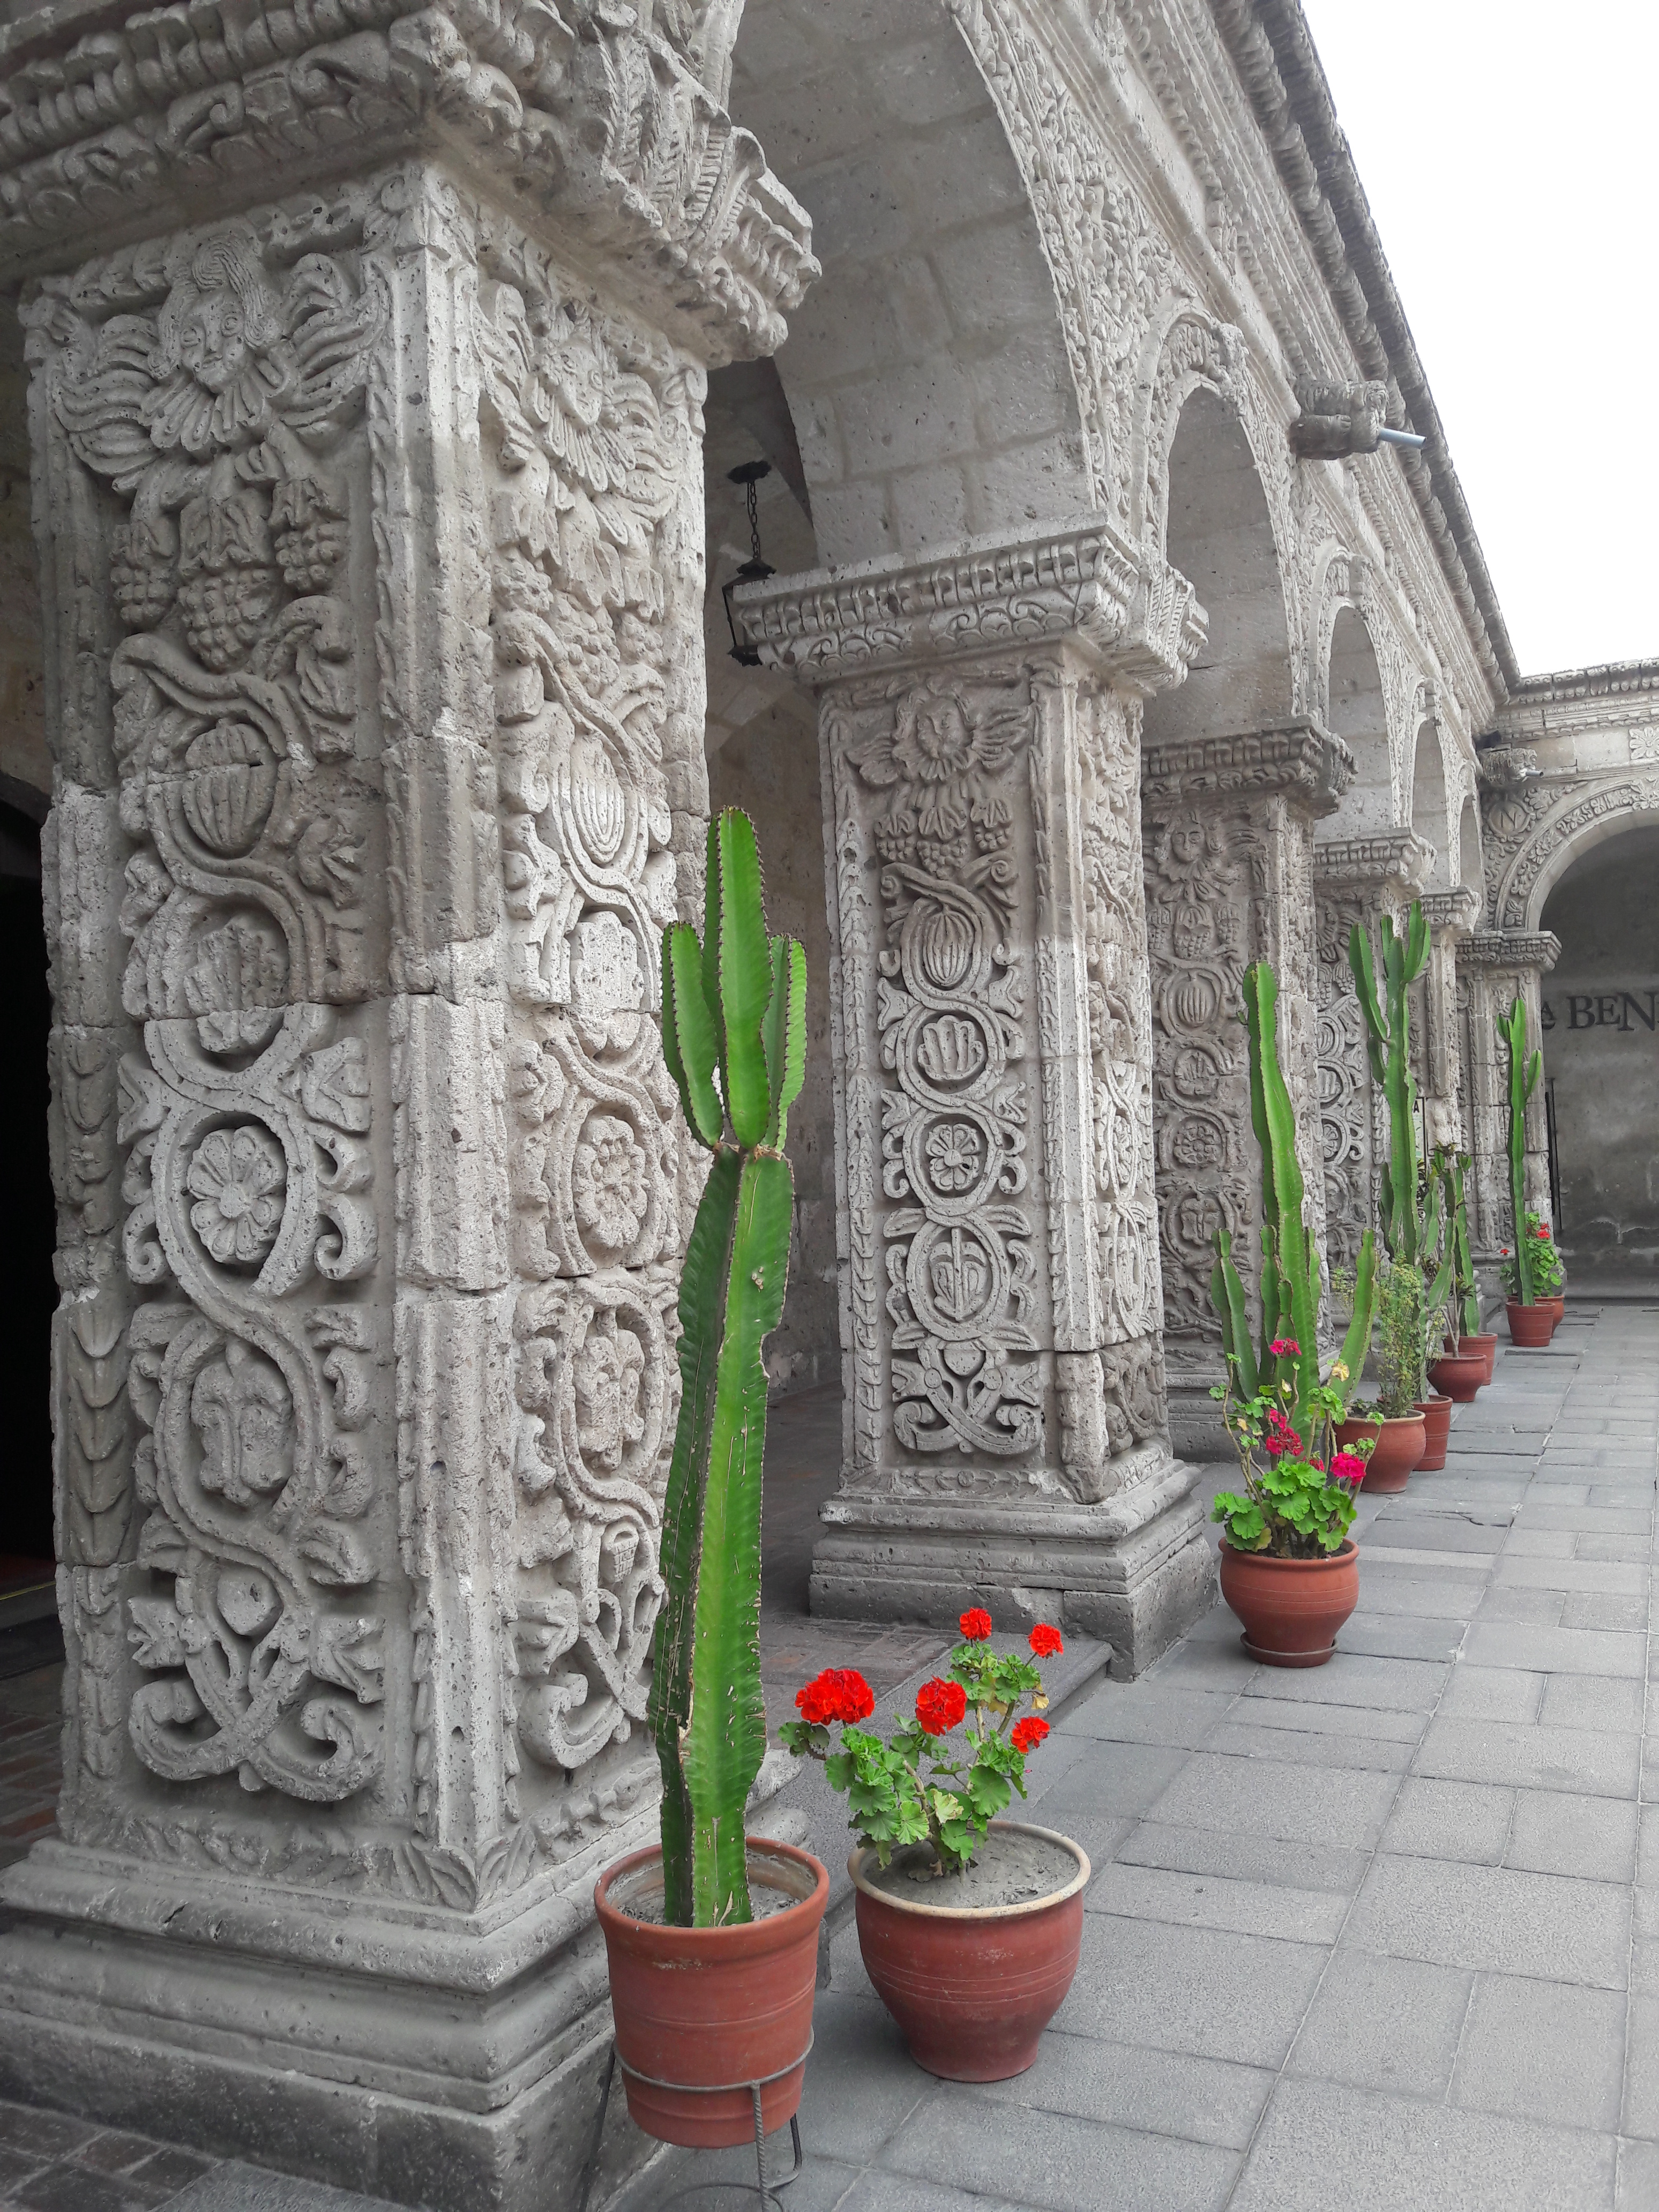 Columns with floral carving decorations. Cactus plants. Red flowers